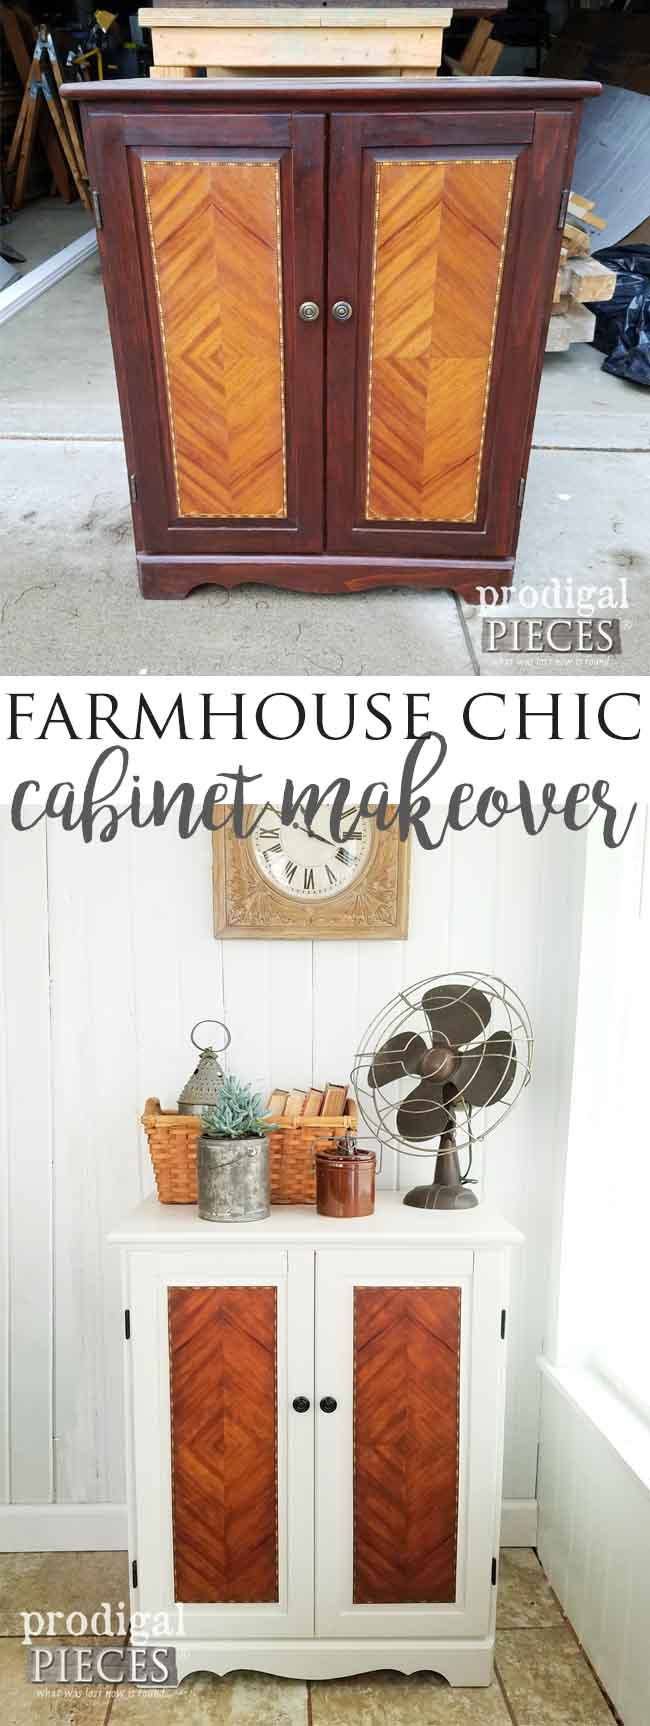 Get the Modern Farmhouse Chic Look with these Simple Steps Outlines by Prodigal Pieces | prodigalpieces.com